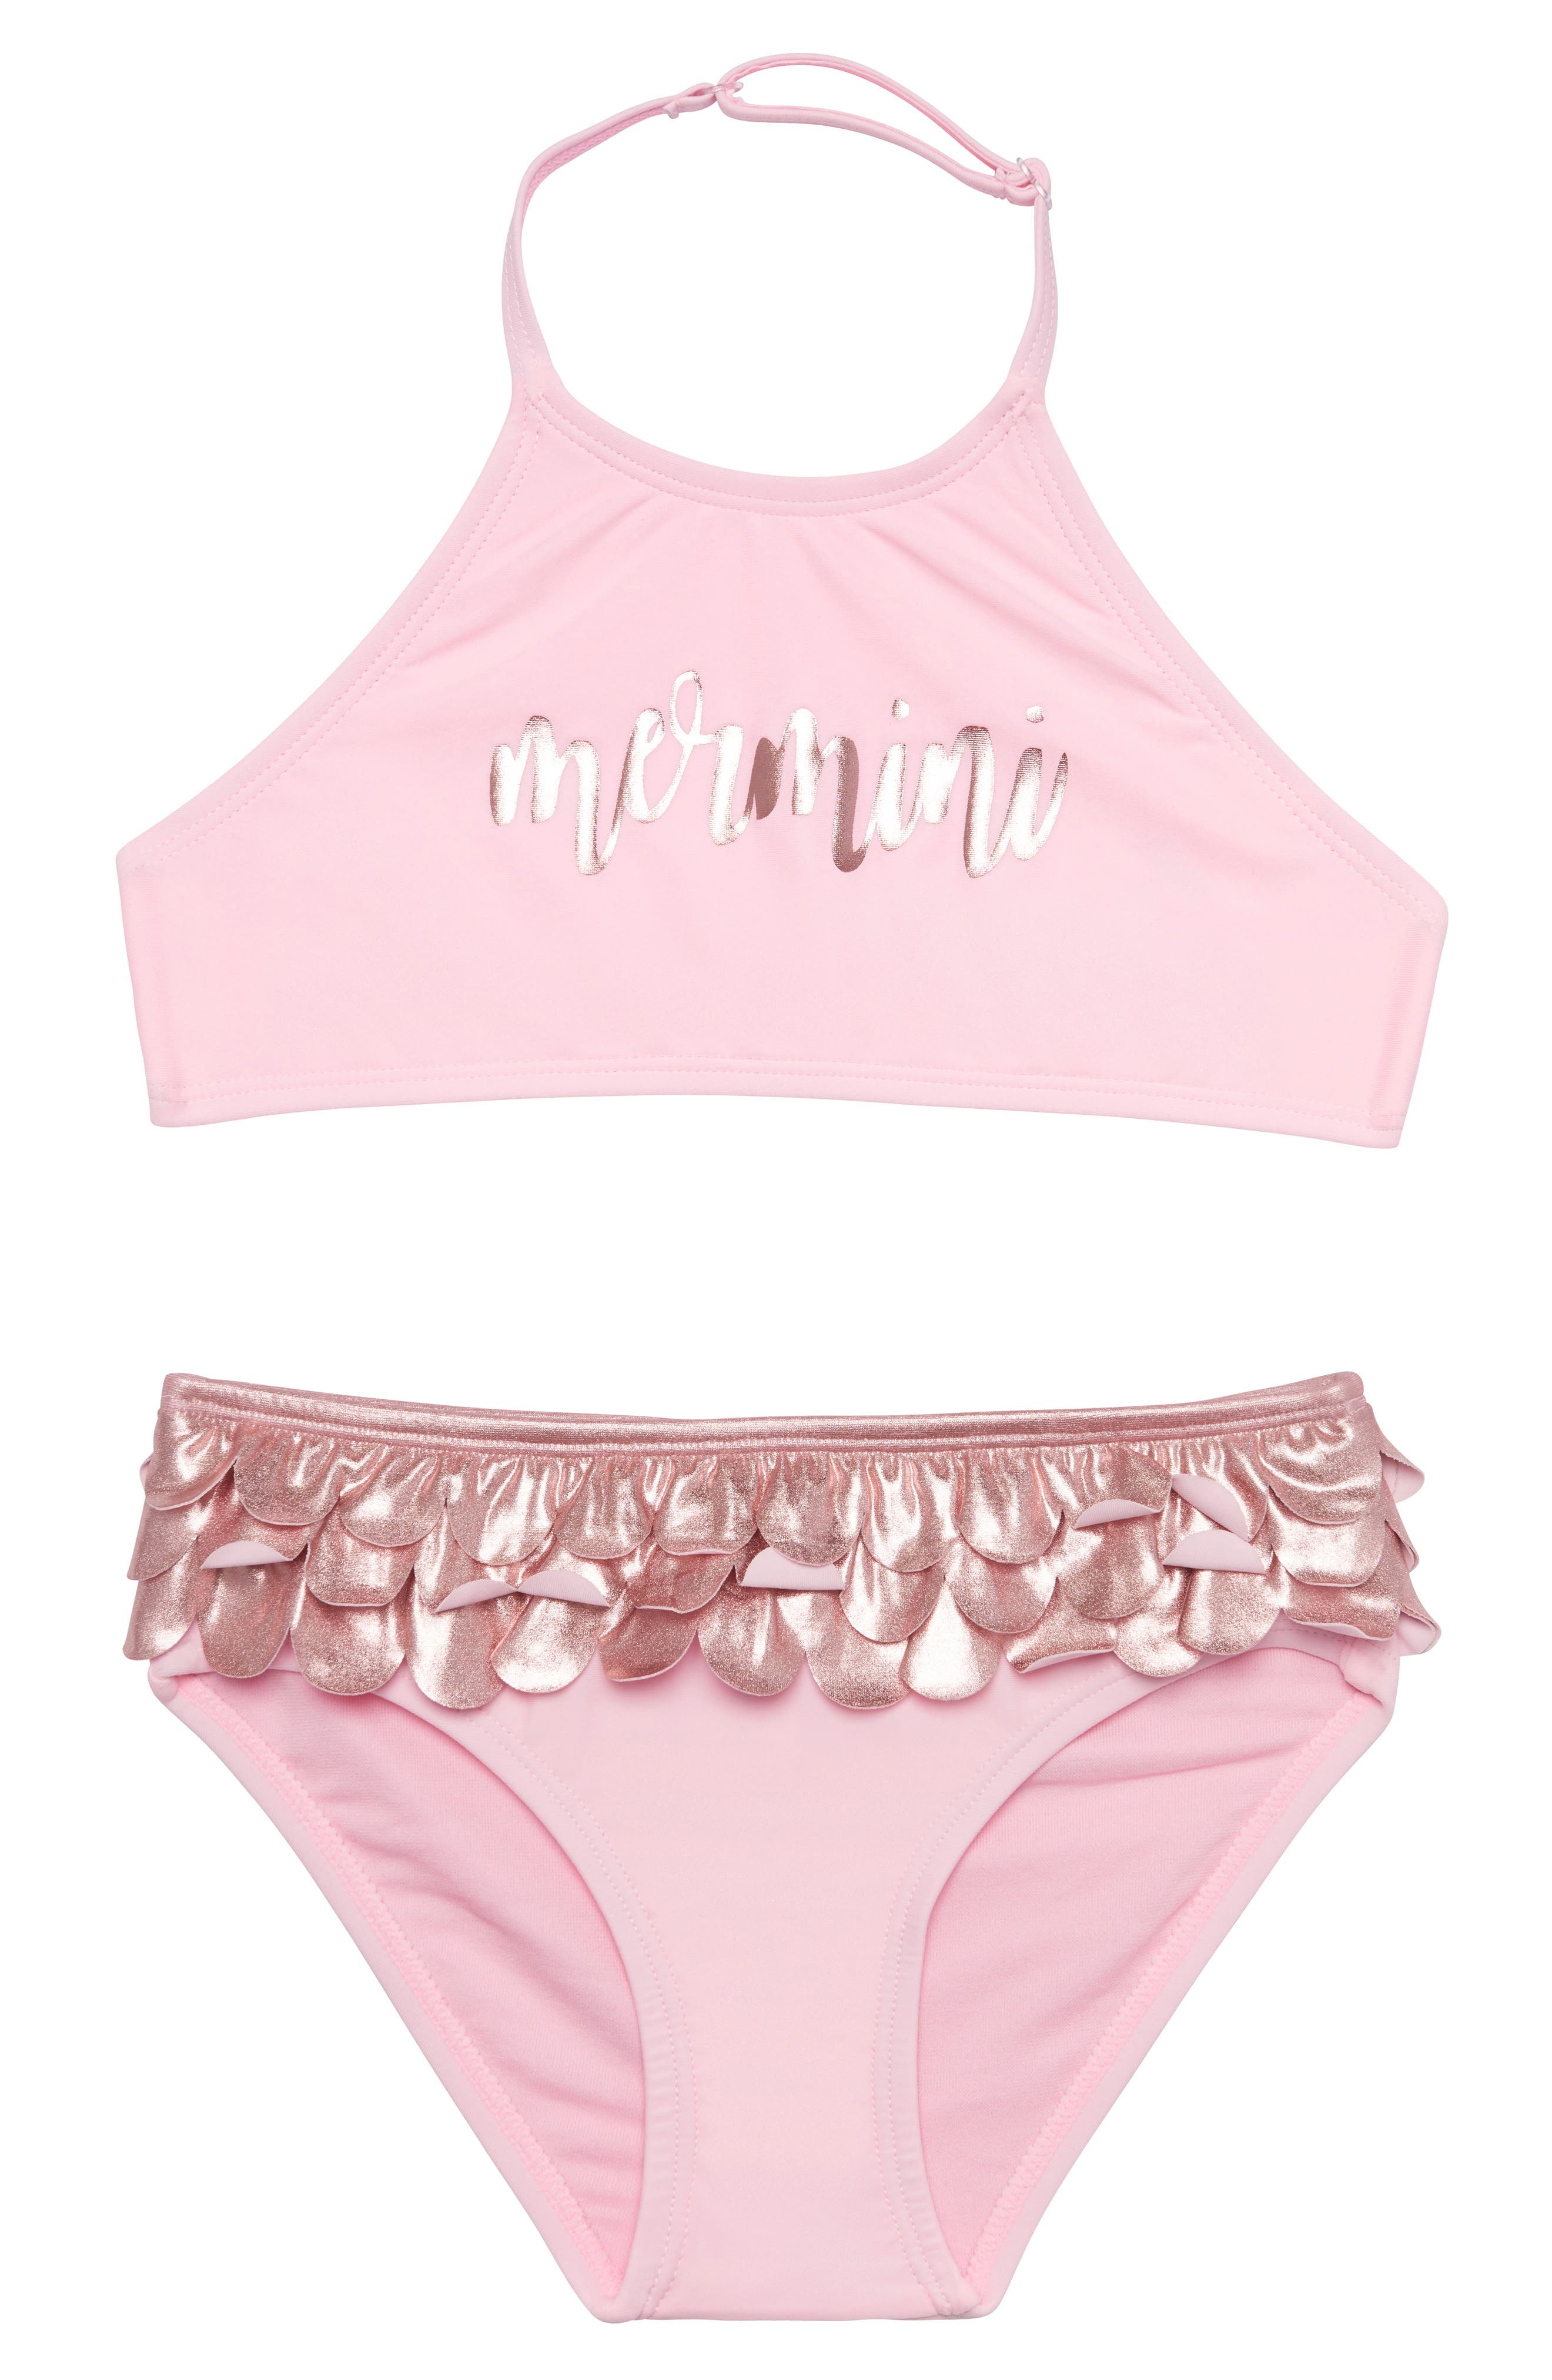 Mermaid Life Two-Piece Swimsuit,                             Main thumbnail 1, color,                             ROSE